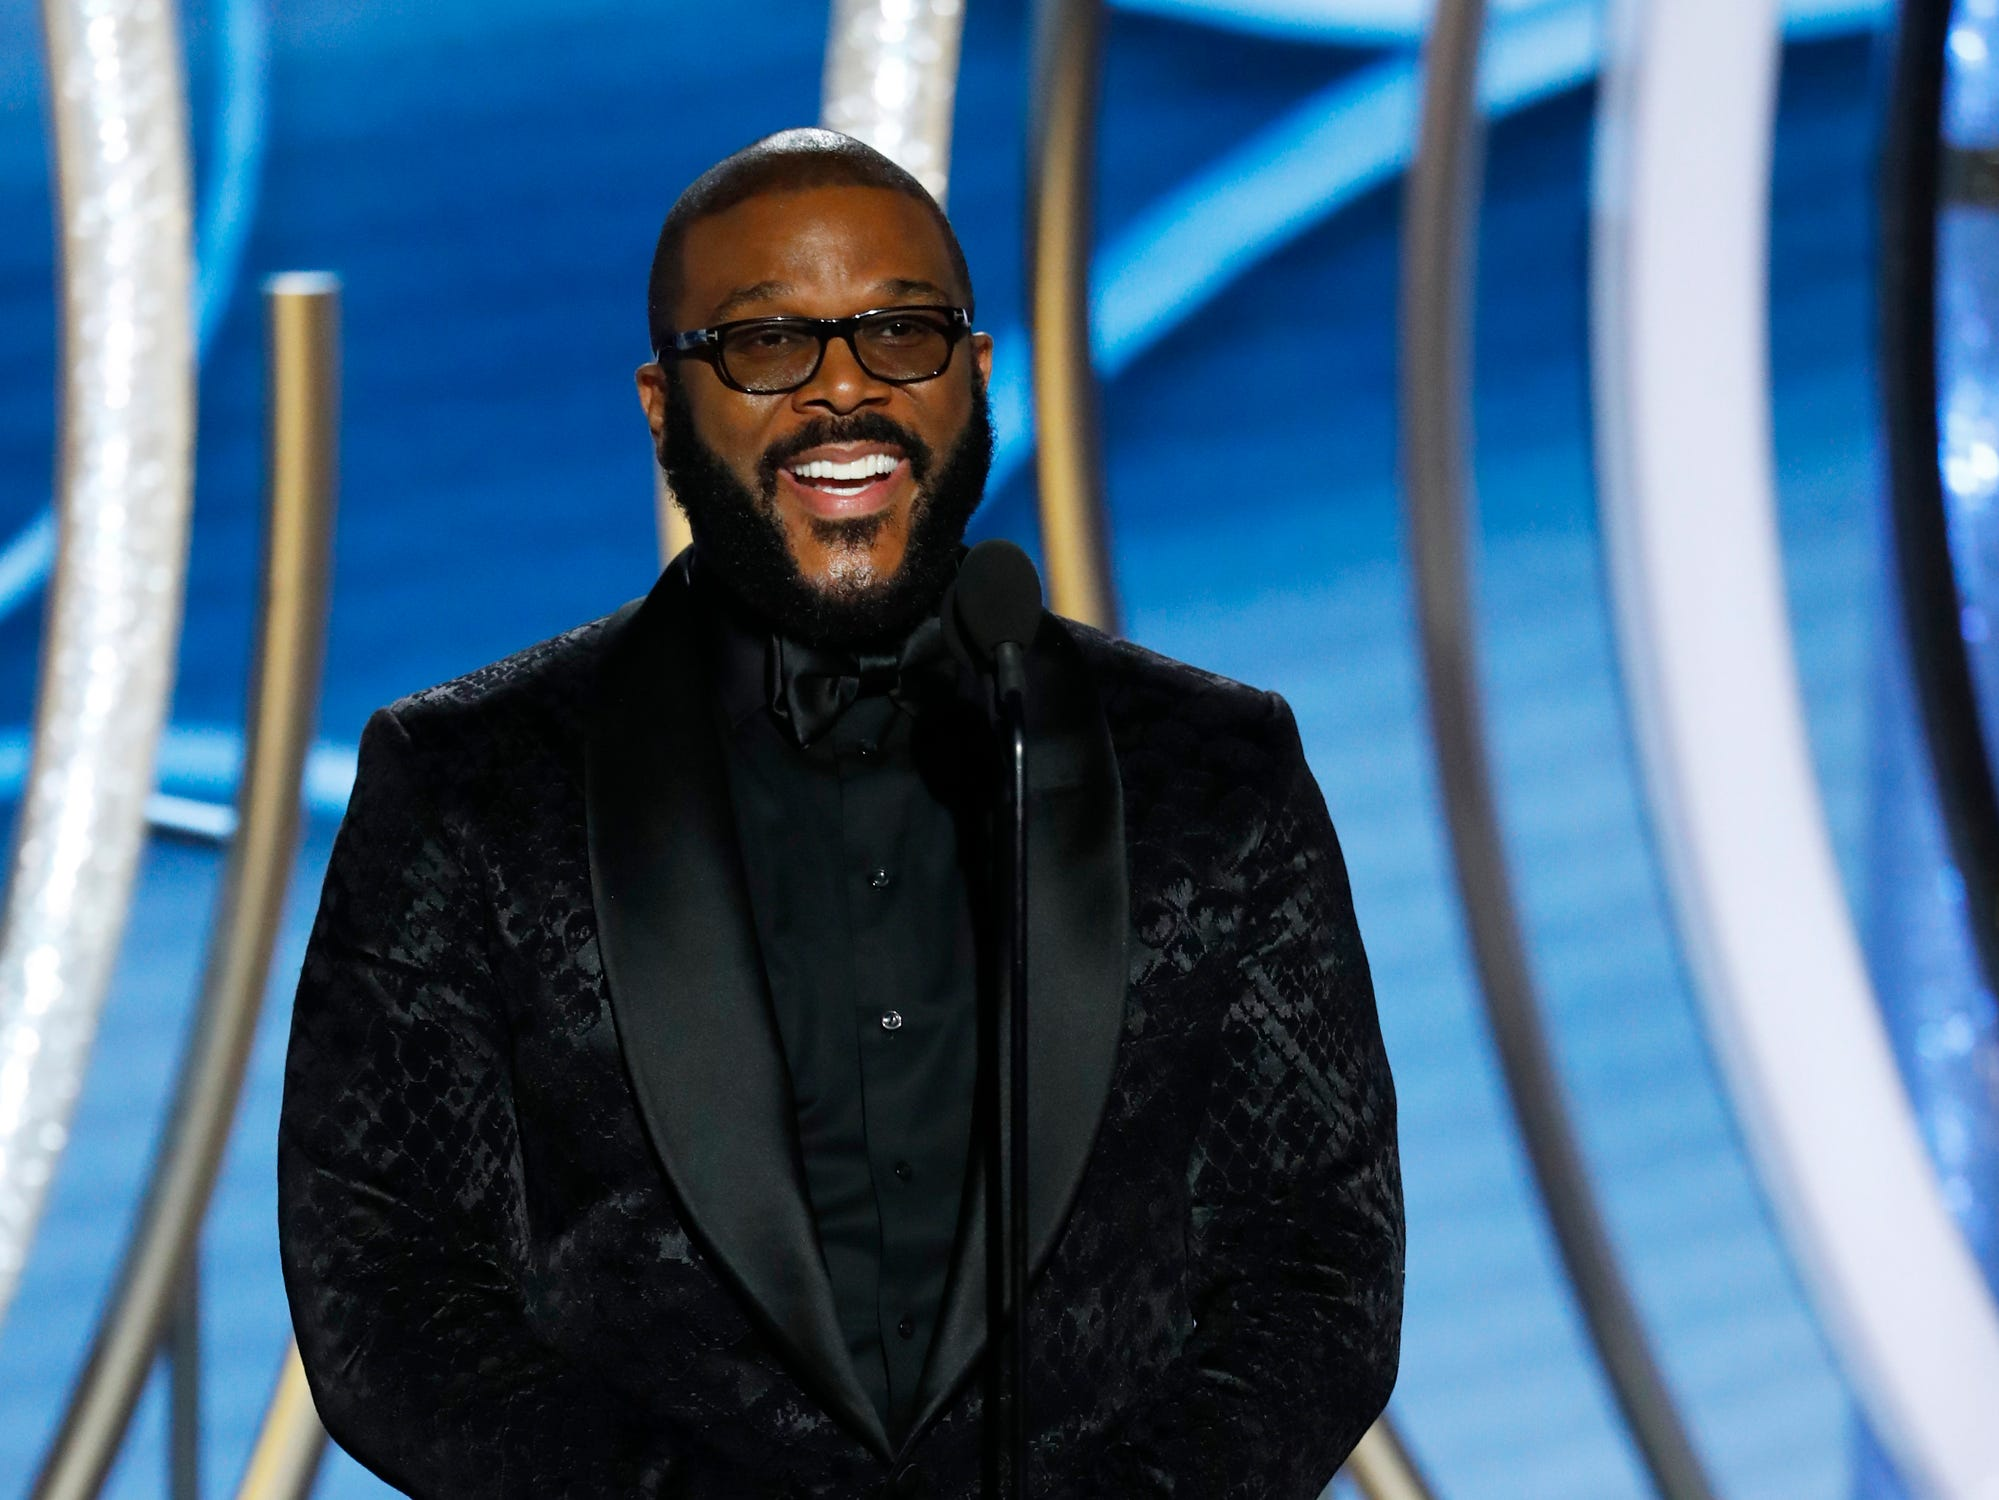 This image released by NBC shows presenter Tyler Perry during the 76th Annual Golden Globe Awards at the Beverly Hilton Hotel.